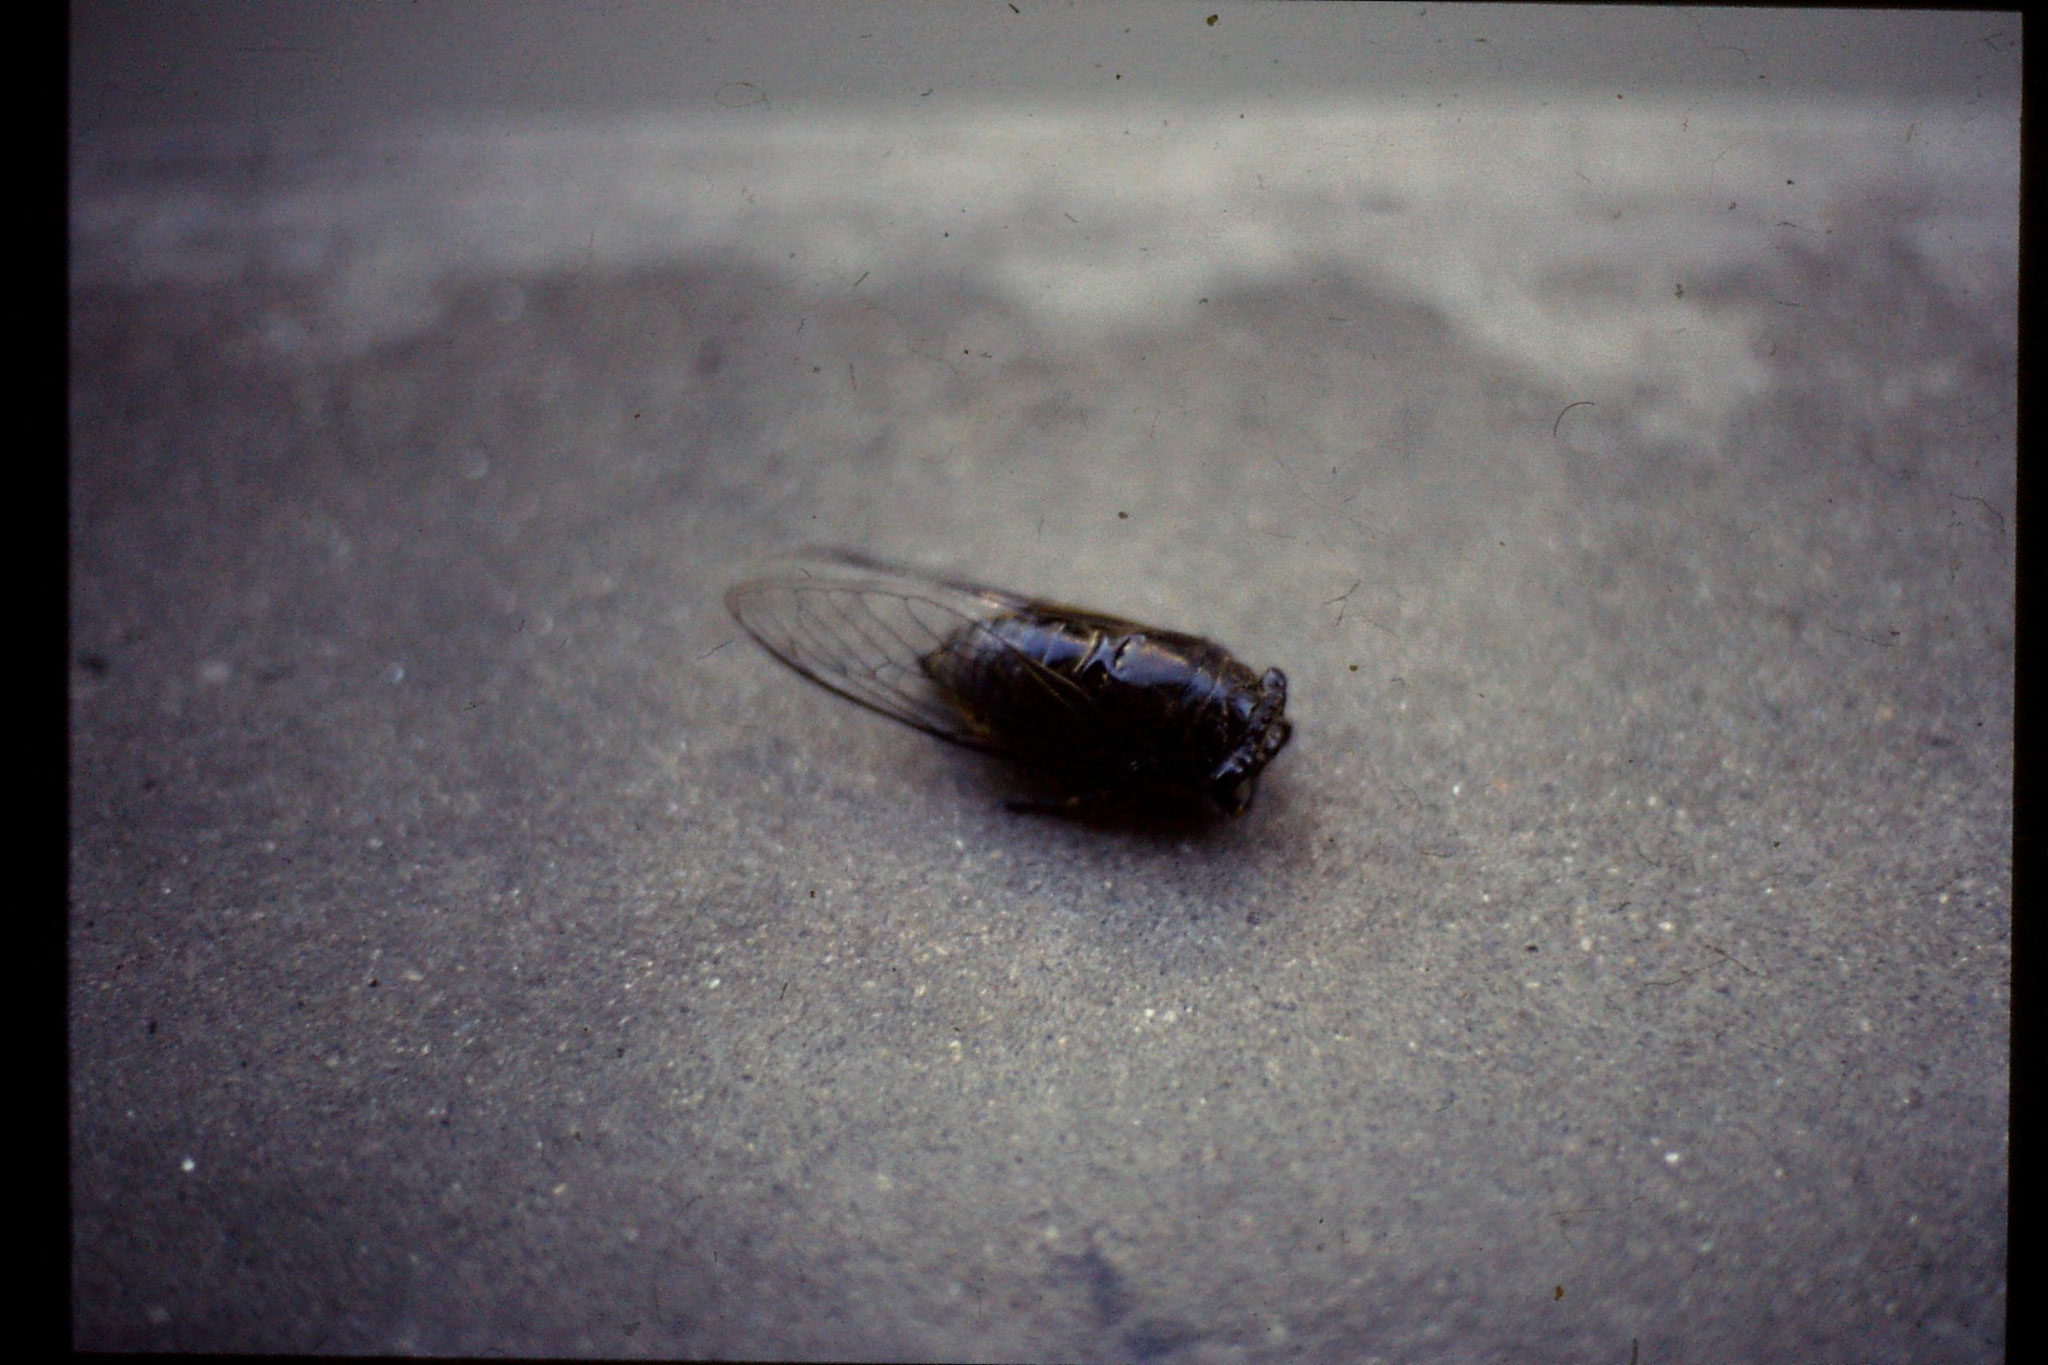 17/7/1989: 29: dead cicadas on balcony